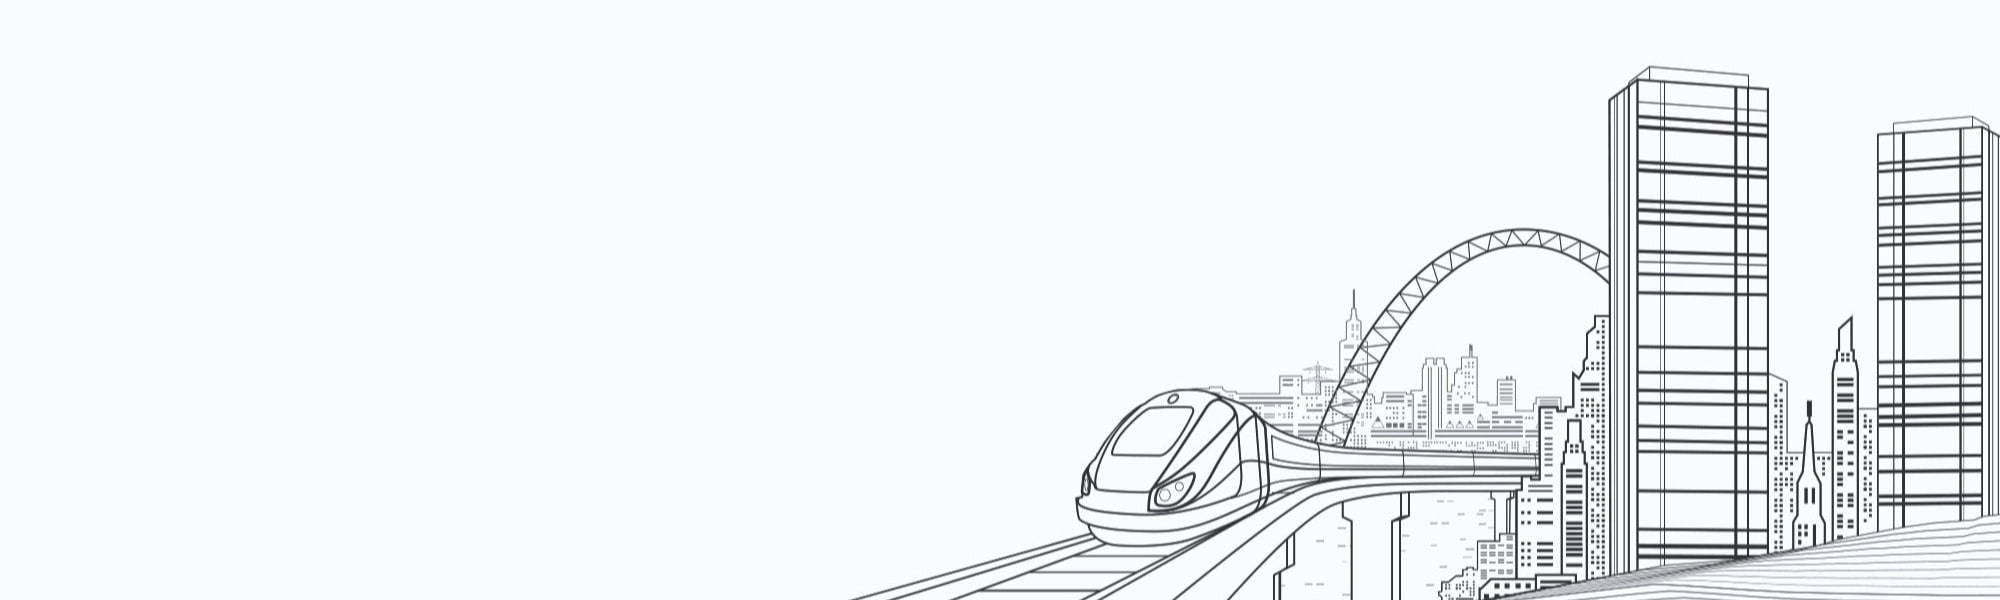 Banner Image of cityscape line drawing